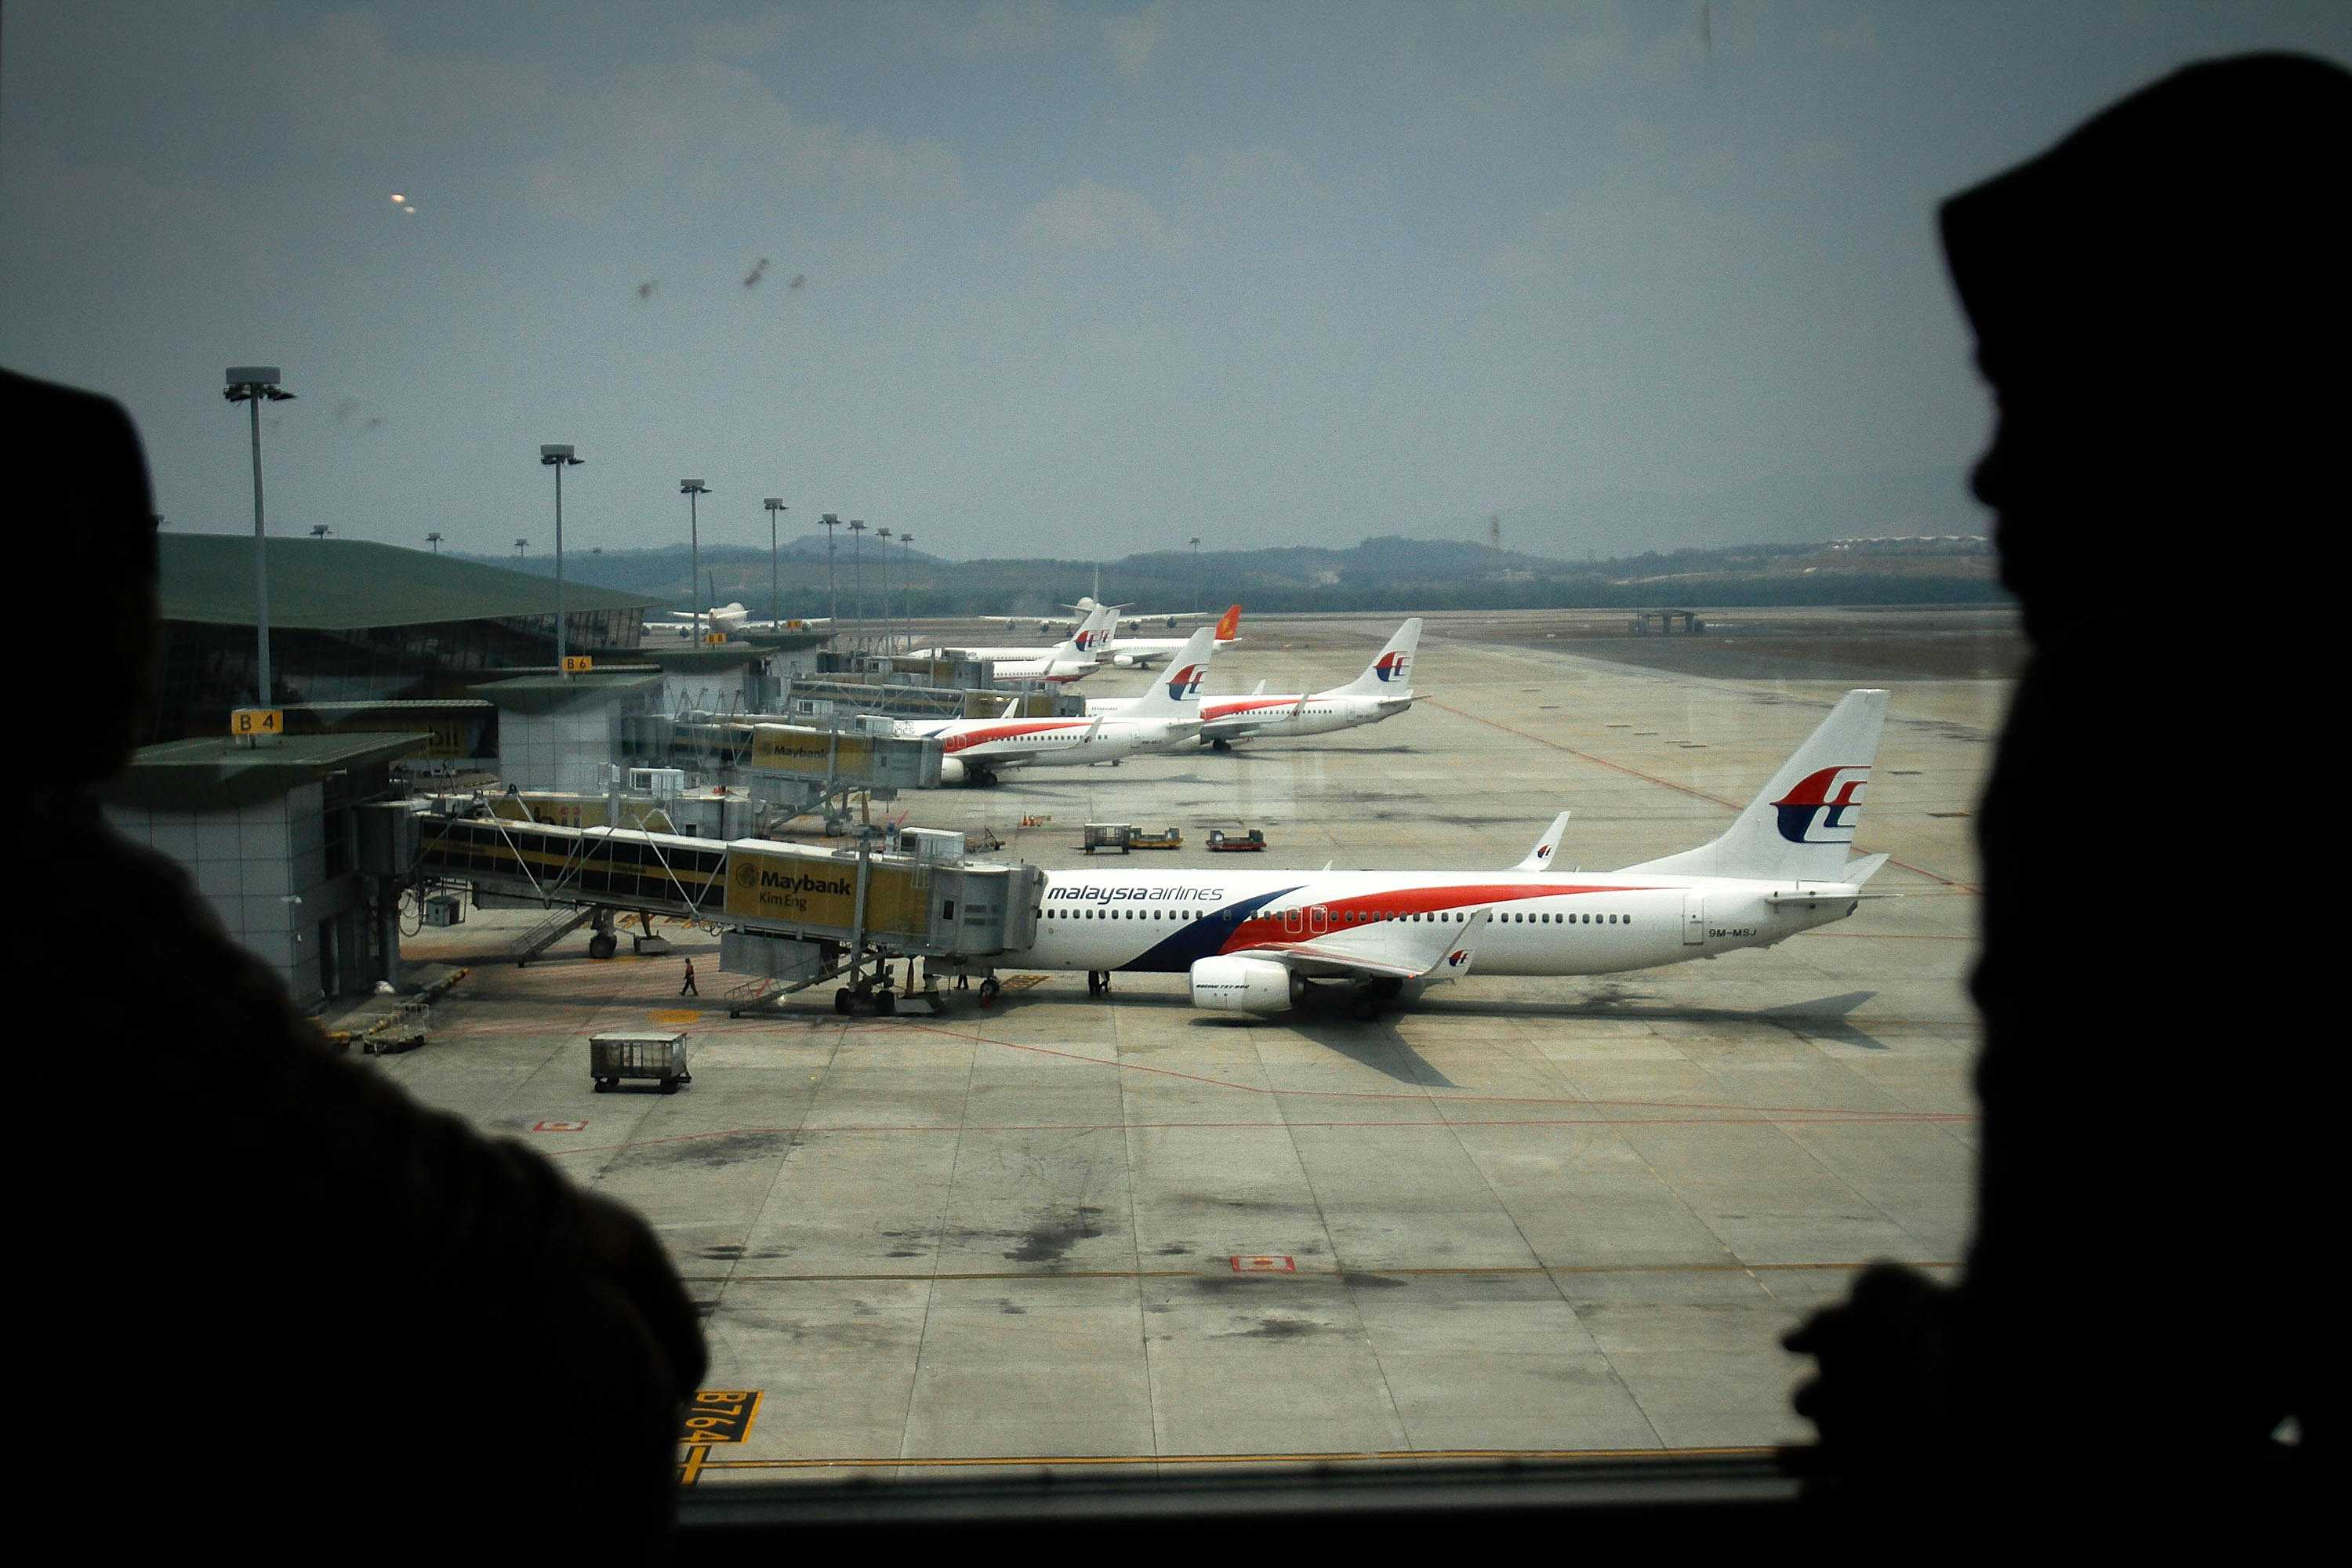 Malaysia Airlines Flight 370's Disappearance Likely Caused